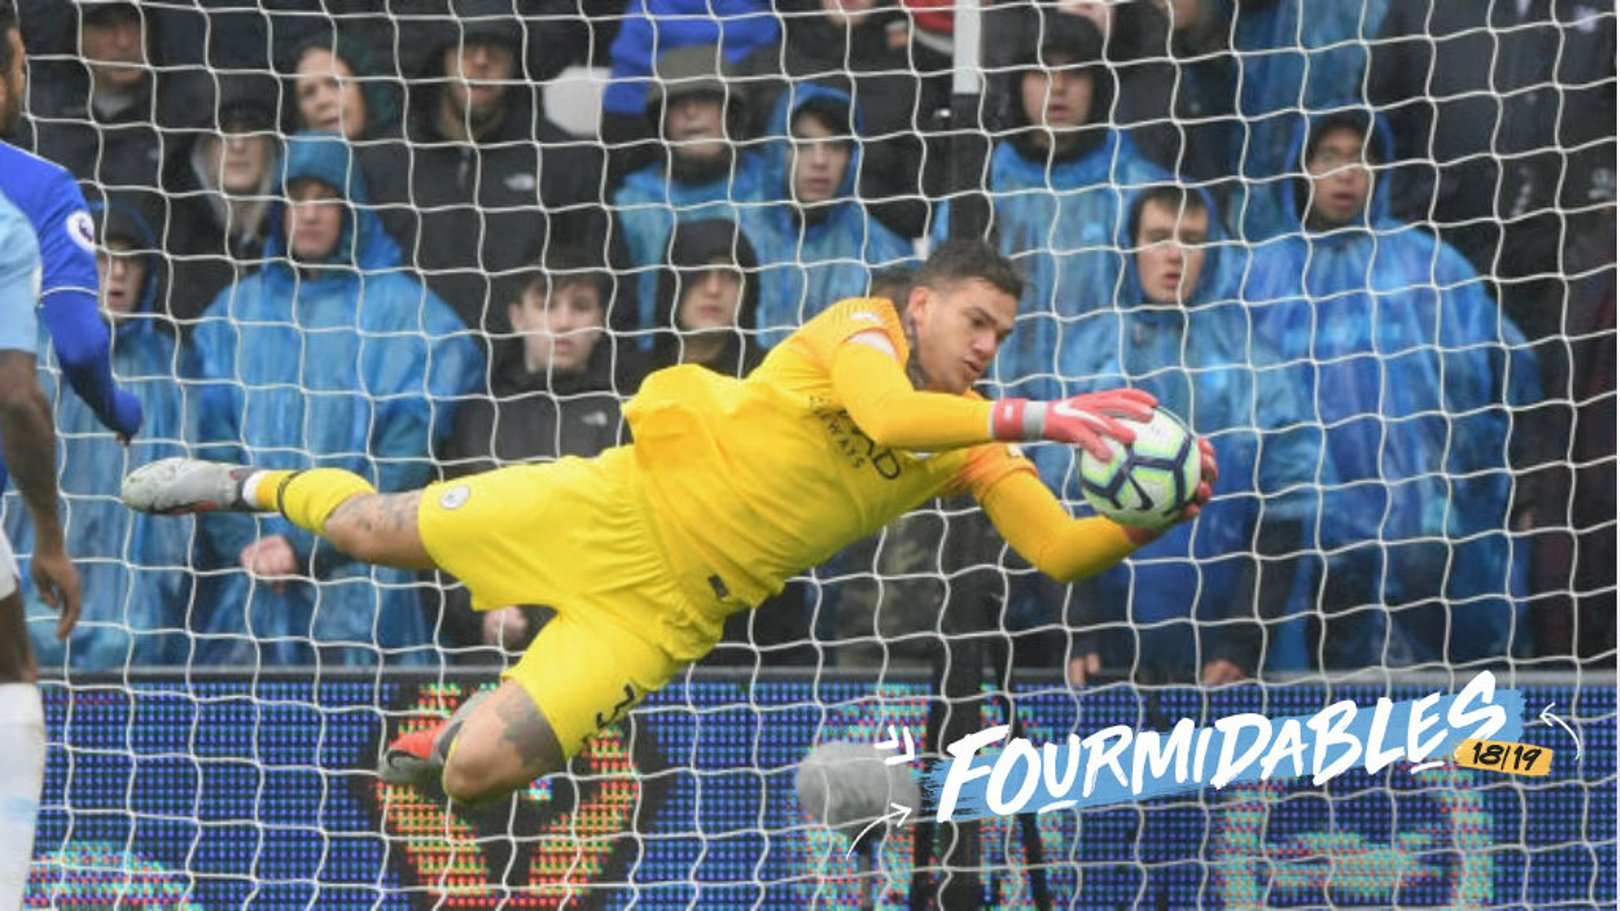 City's Fourmidables in focus: Ederson